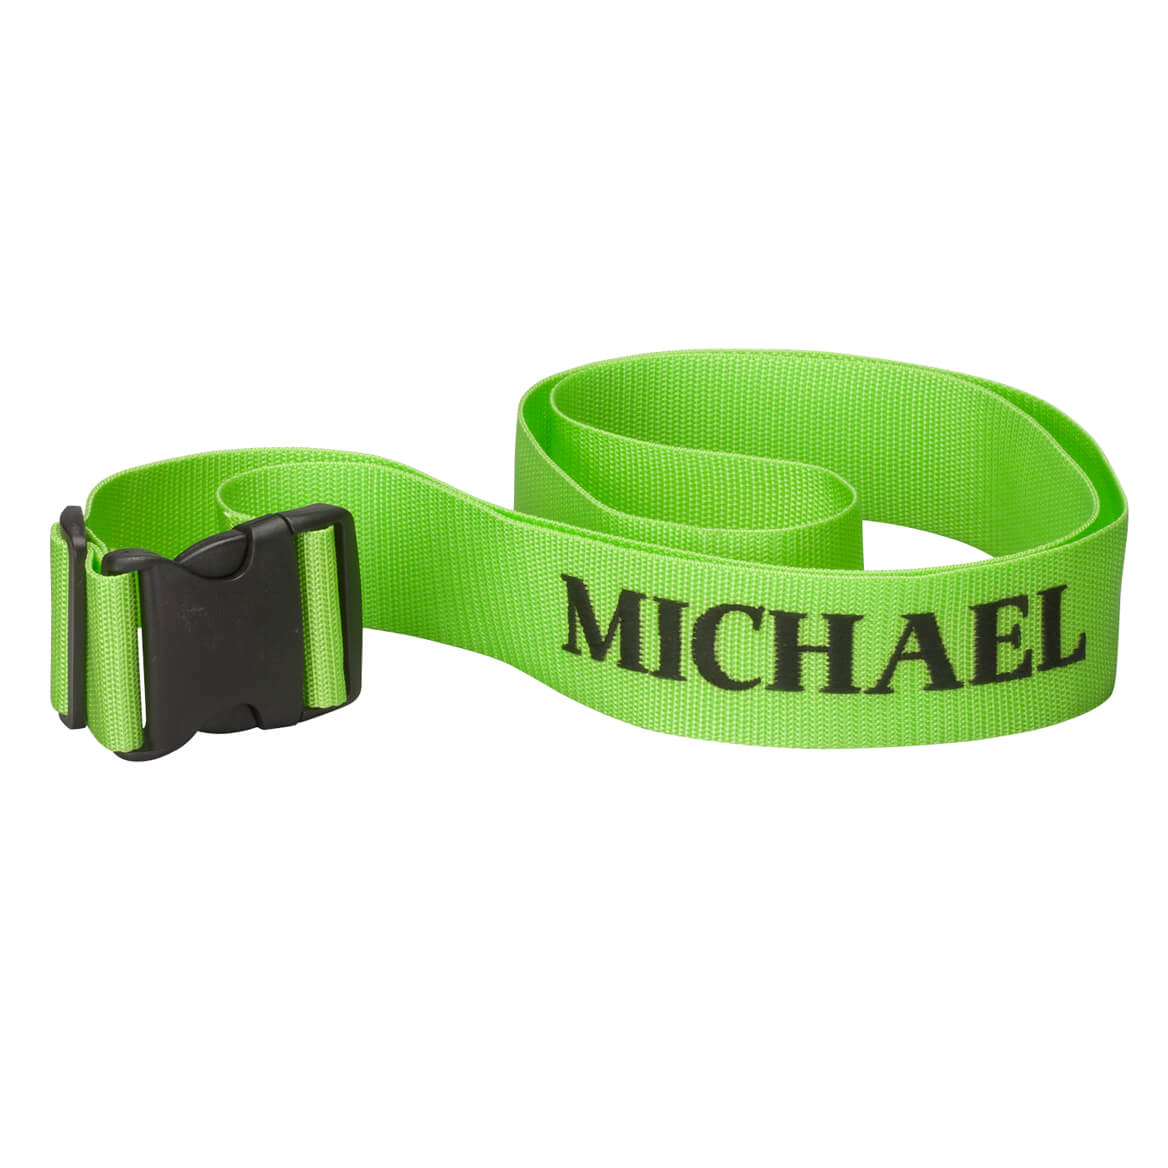 Personalized Green Luggage Strap